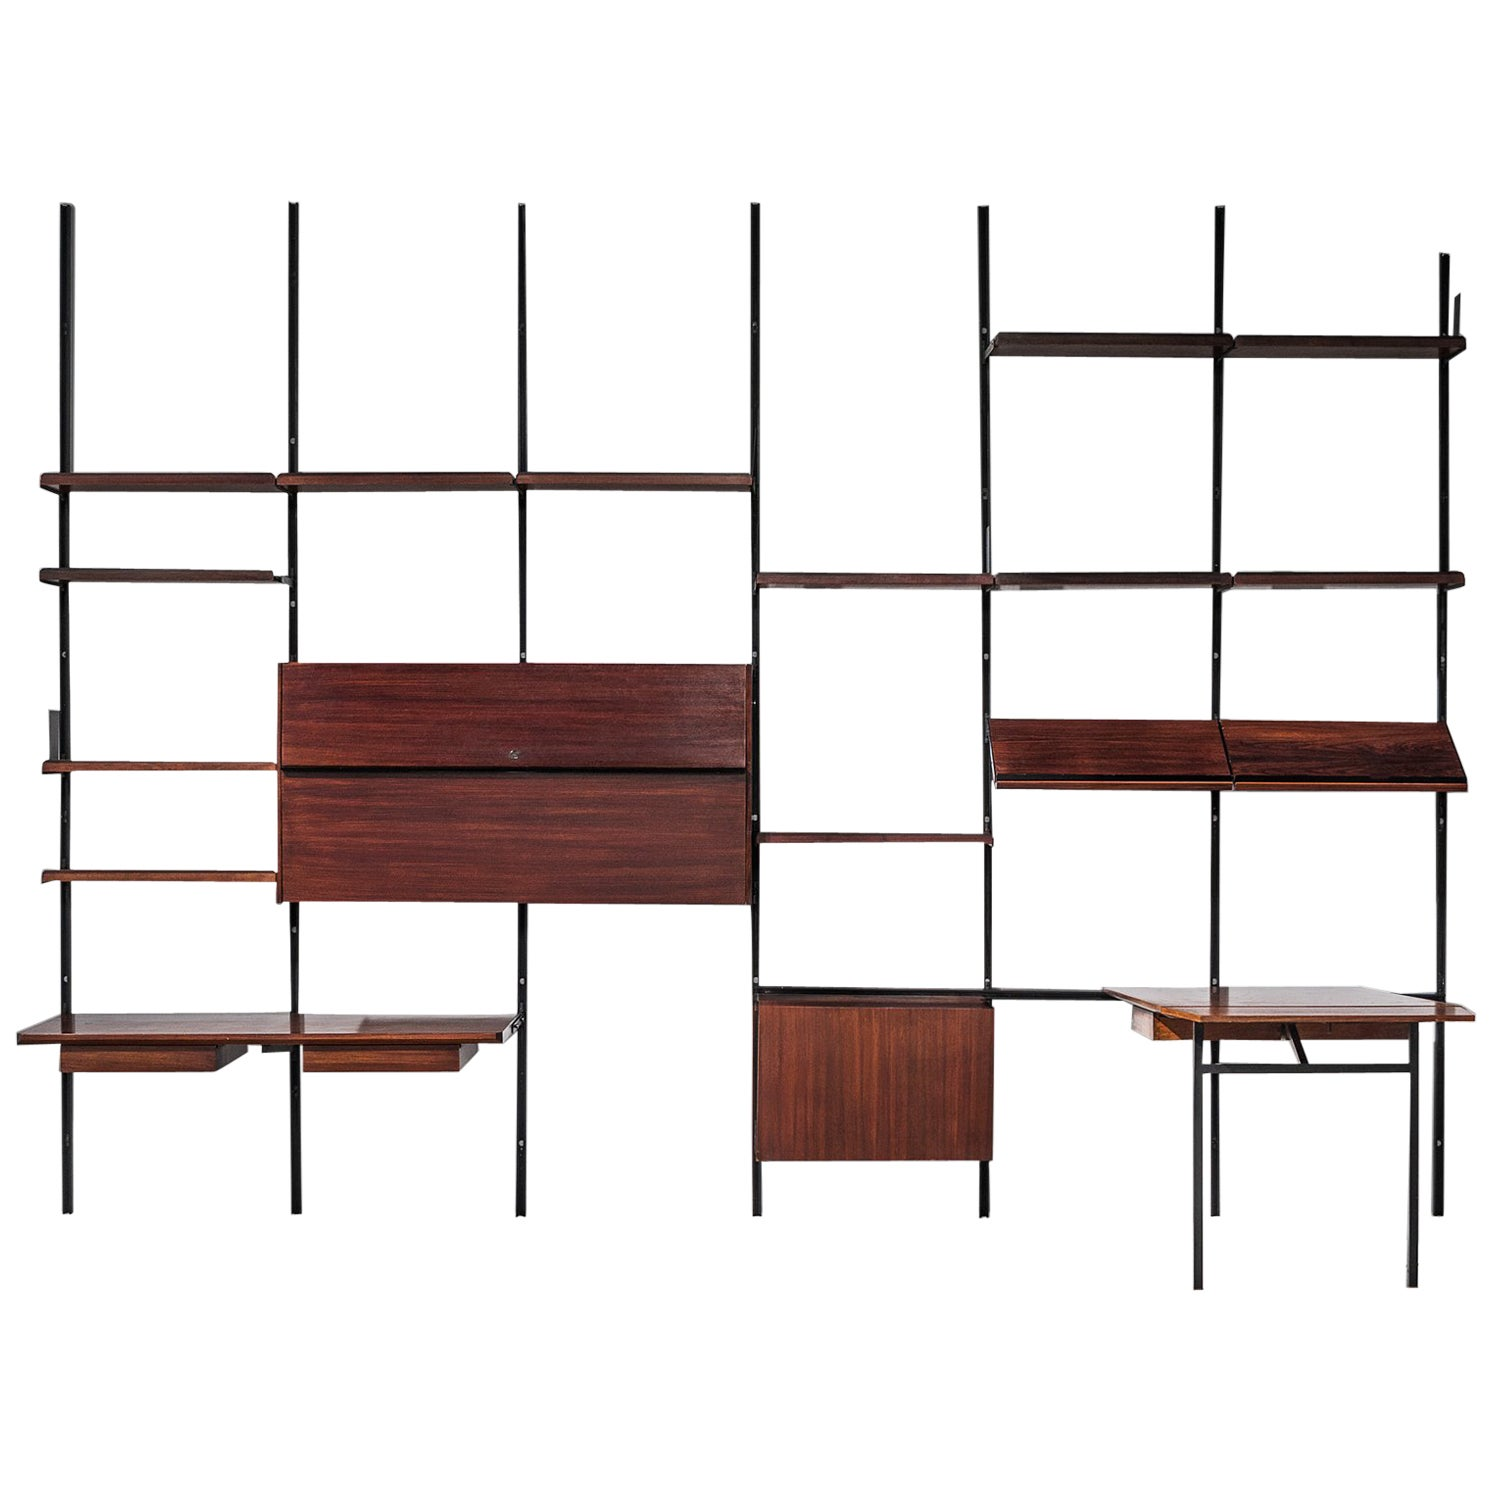 Wall Mounted Shelving Unit In Jacaranda By Joaquim Tenreiro, Brazil, 1950S